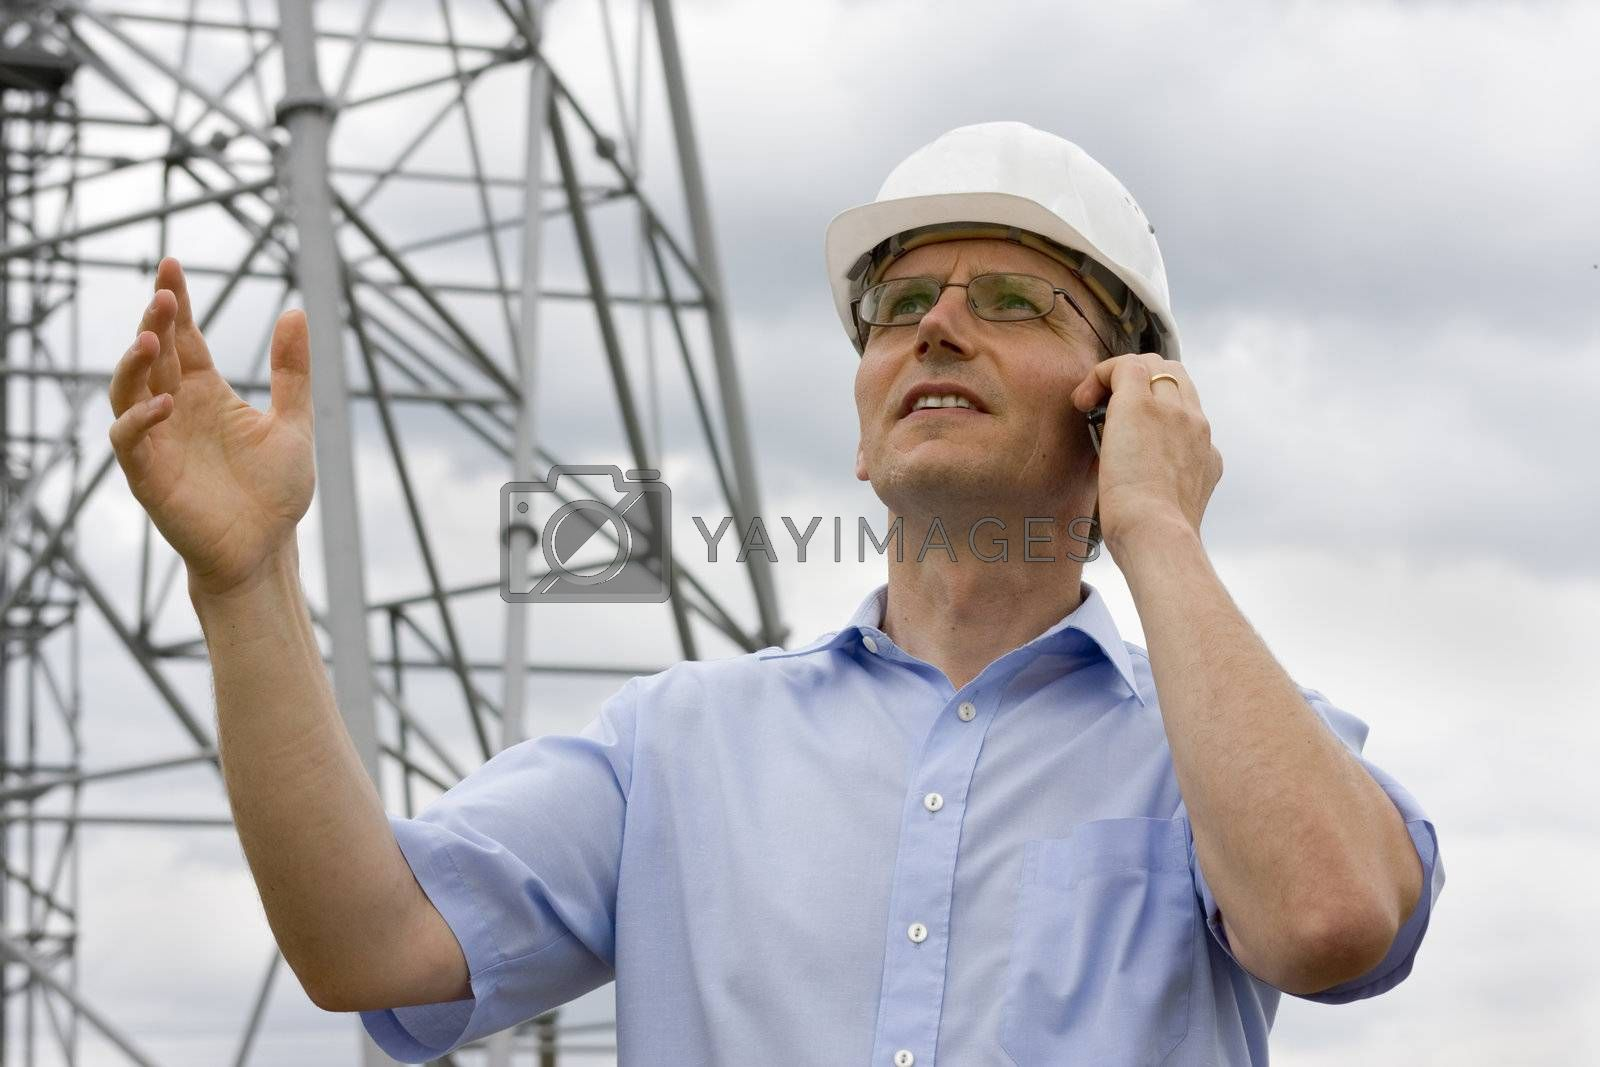 Engineer gesturing while talking on cell phone on construction side